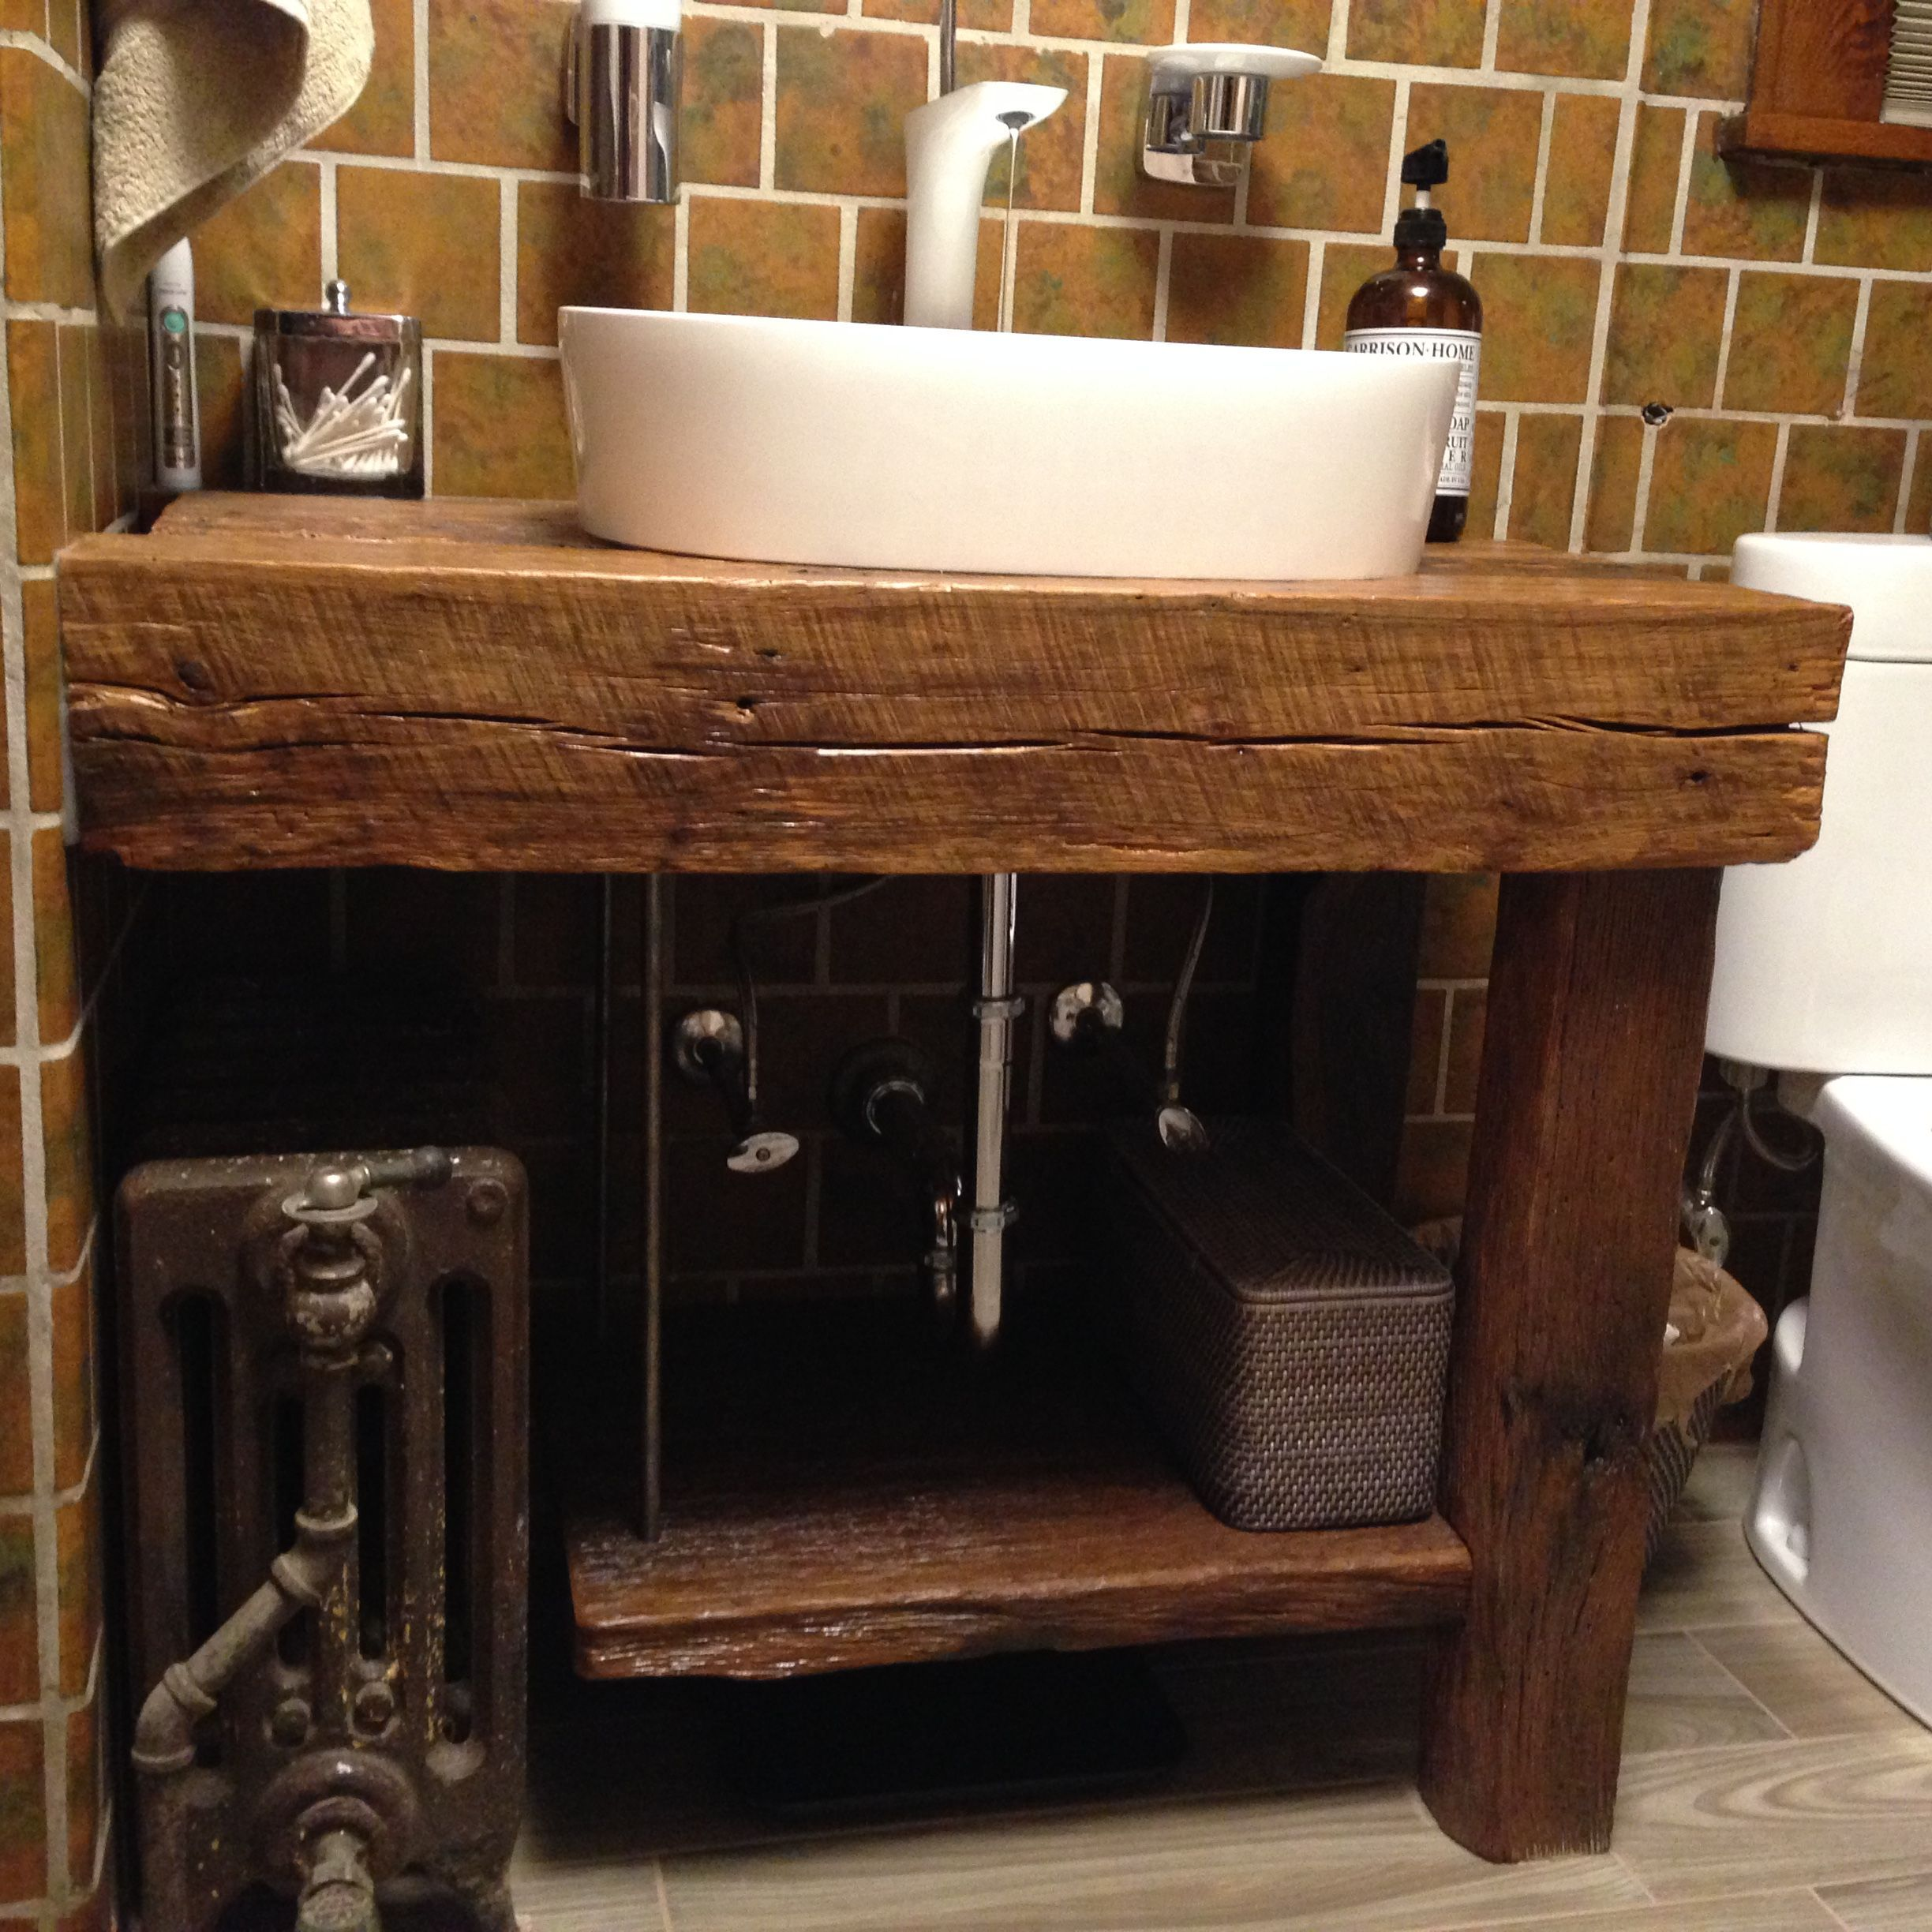 Custom made rustic bath vanity reclaimed barnwood